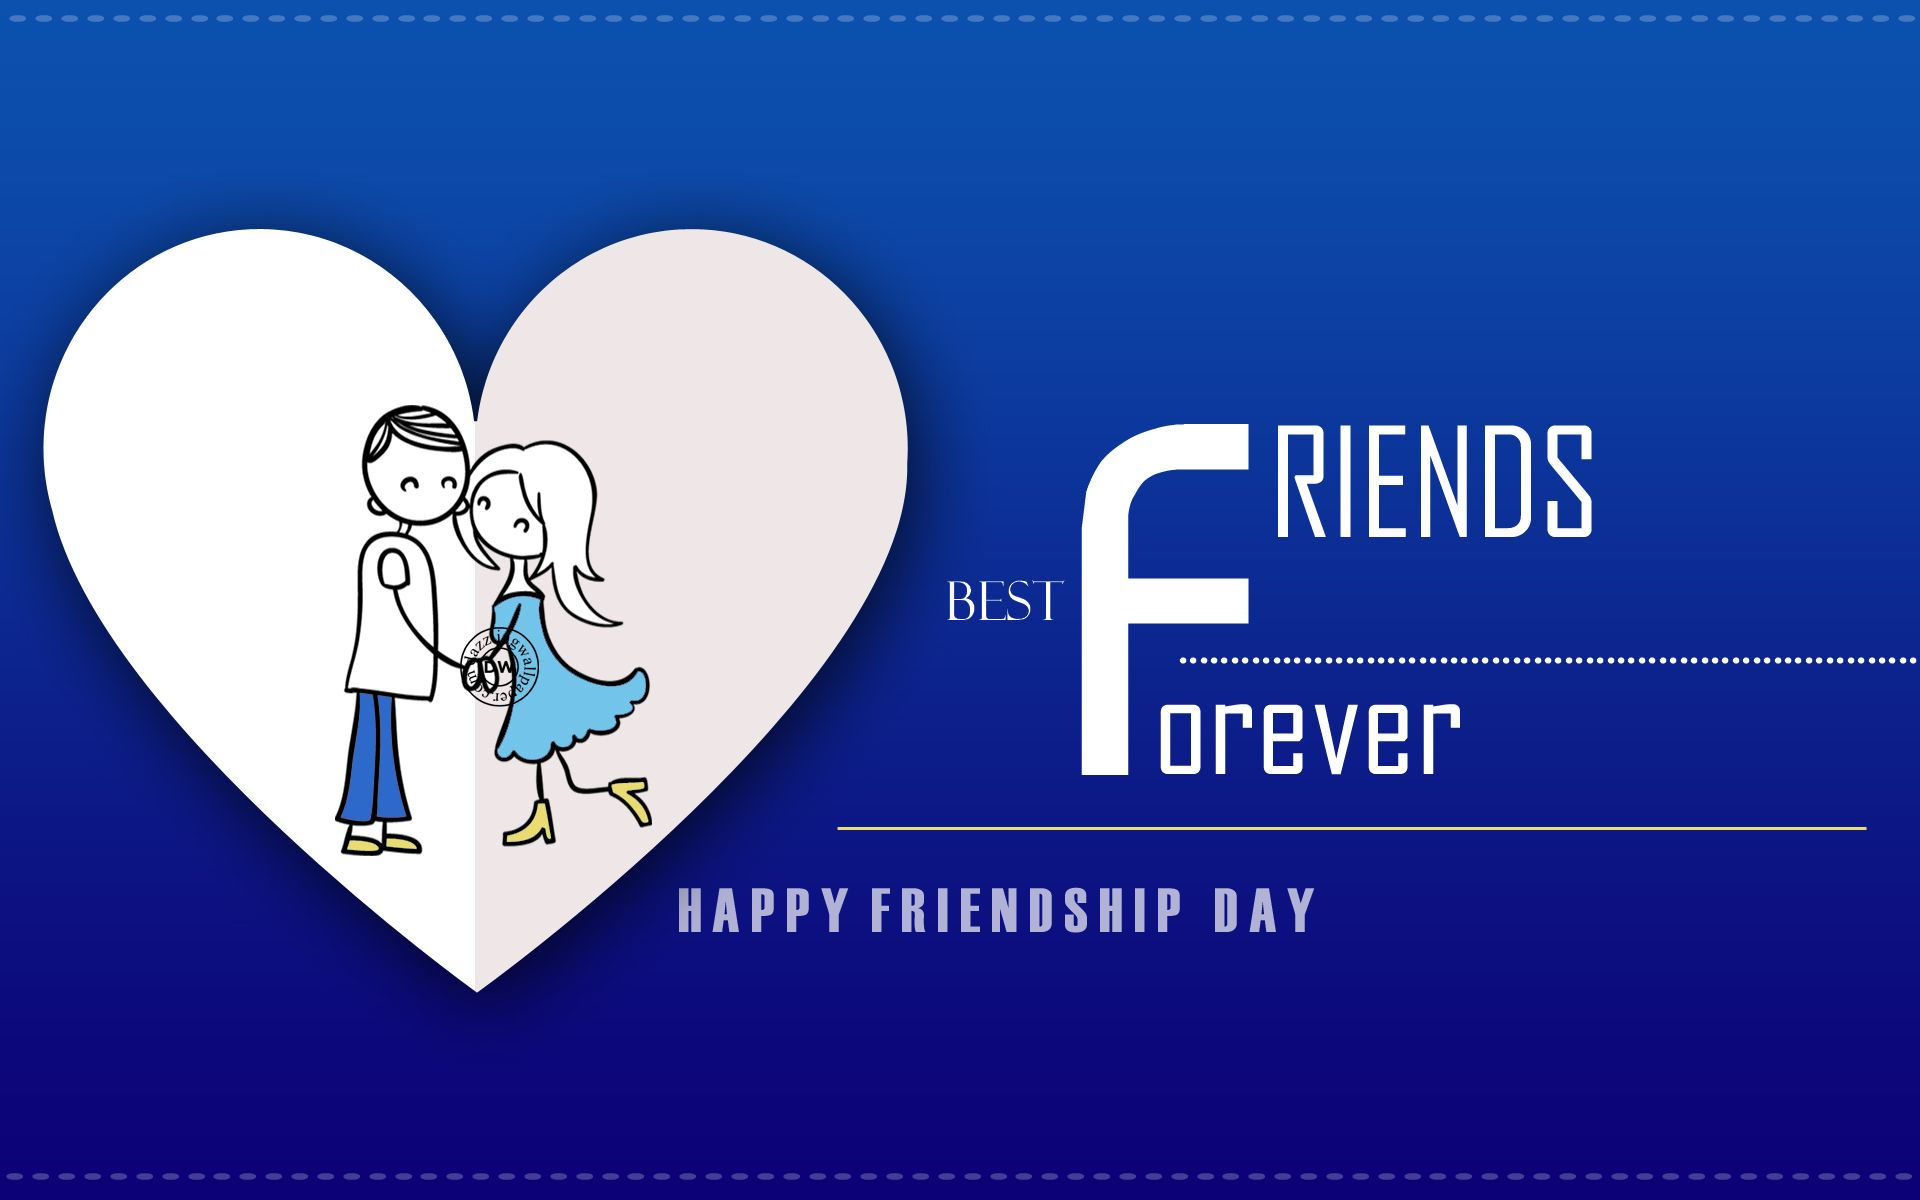 Best Friends Forever HD Wallpaper Happy Friendship Day Friend Wallpapers Images Pictures Greetings Quotes BFF